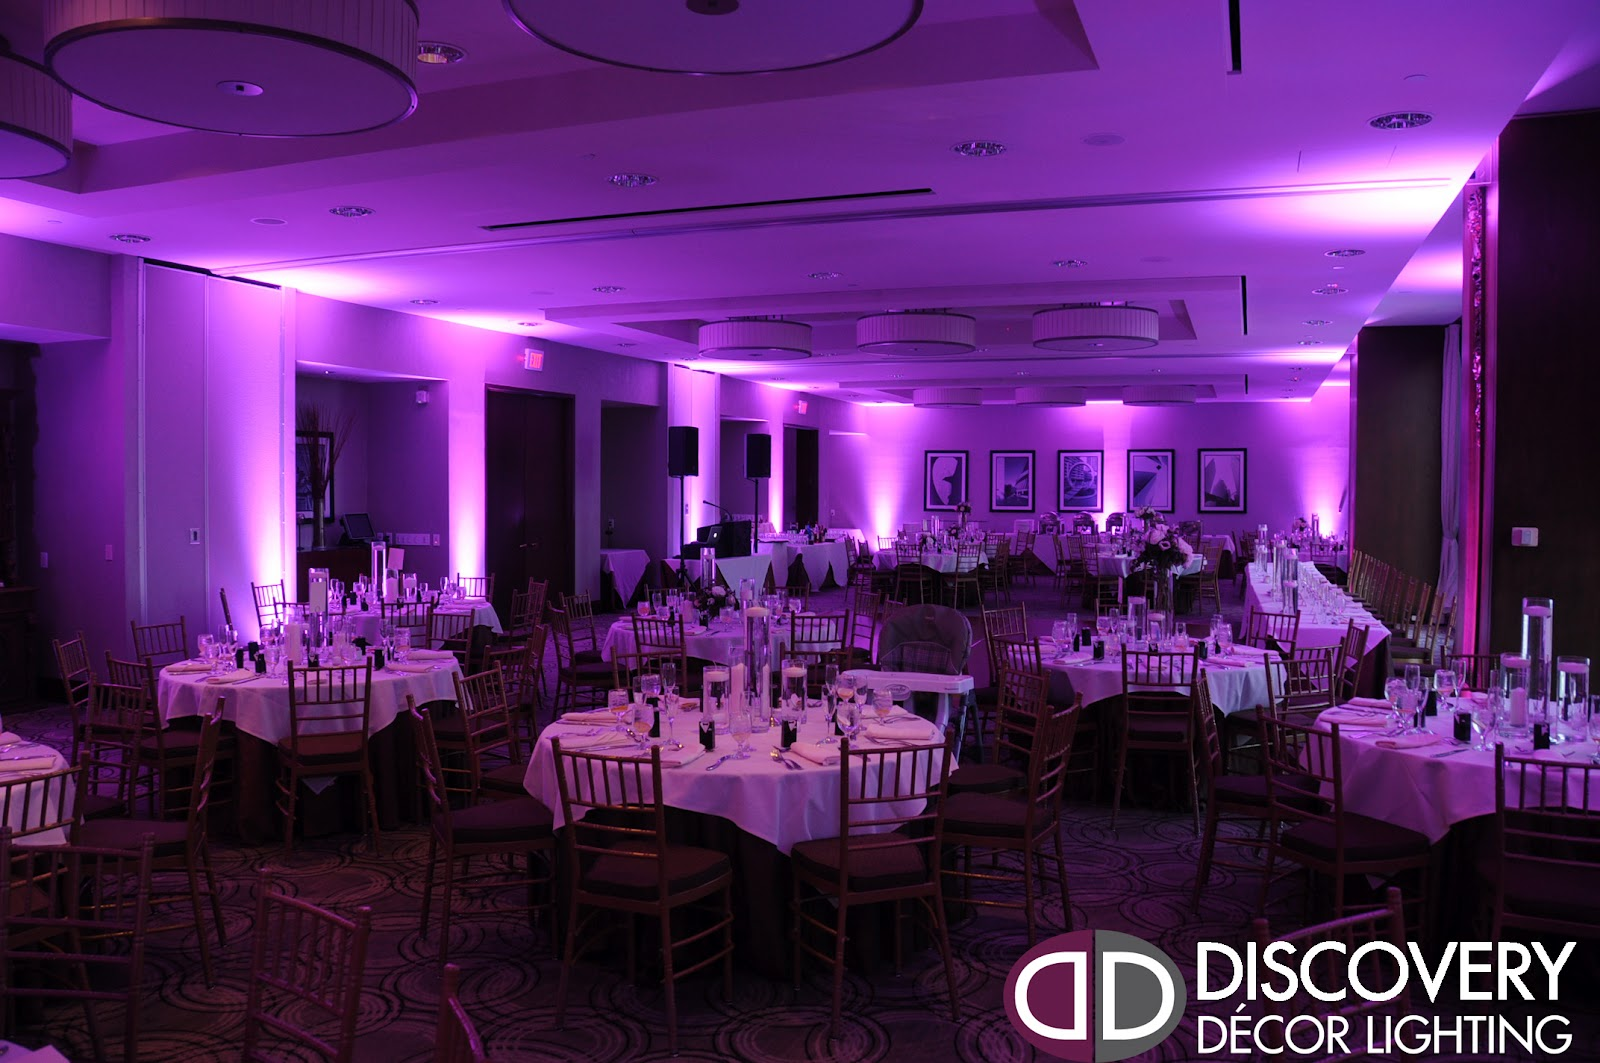 Purple uplighting at the Tower Club in Dallas & discovery dj and lighting | Discovery DJ u0026 Lighting